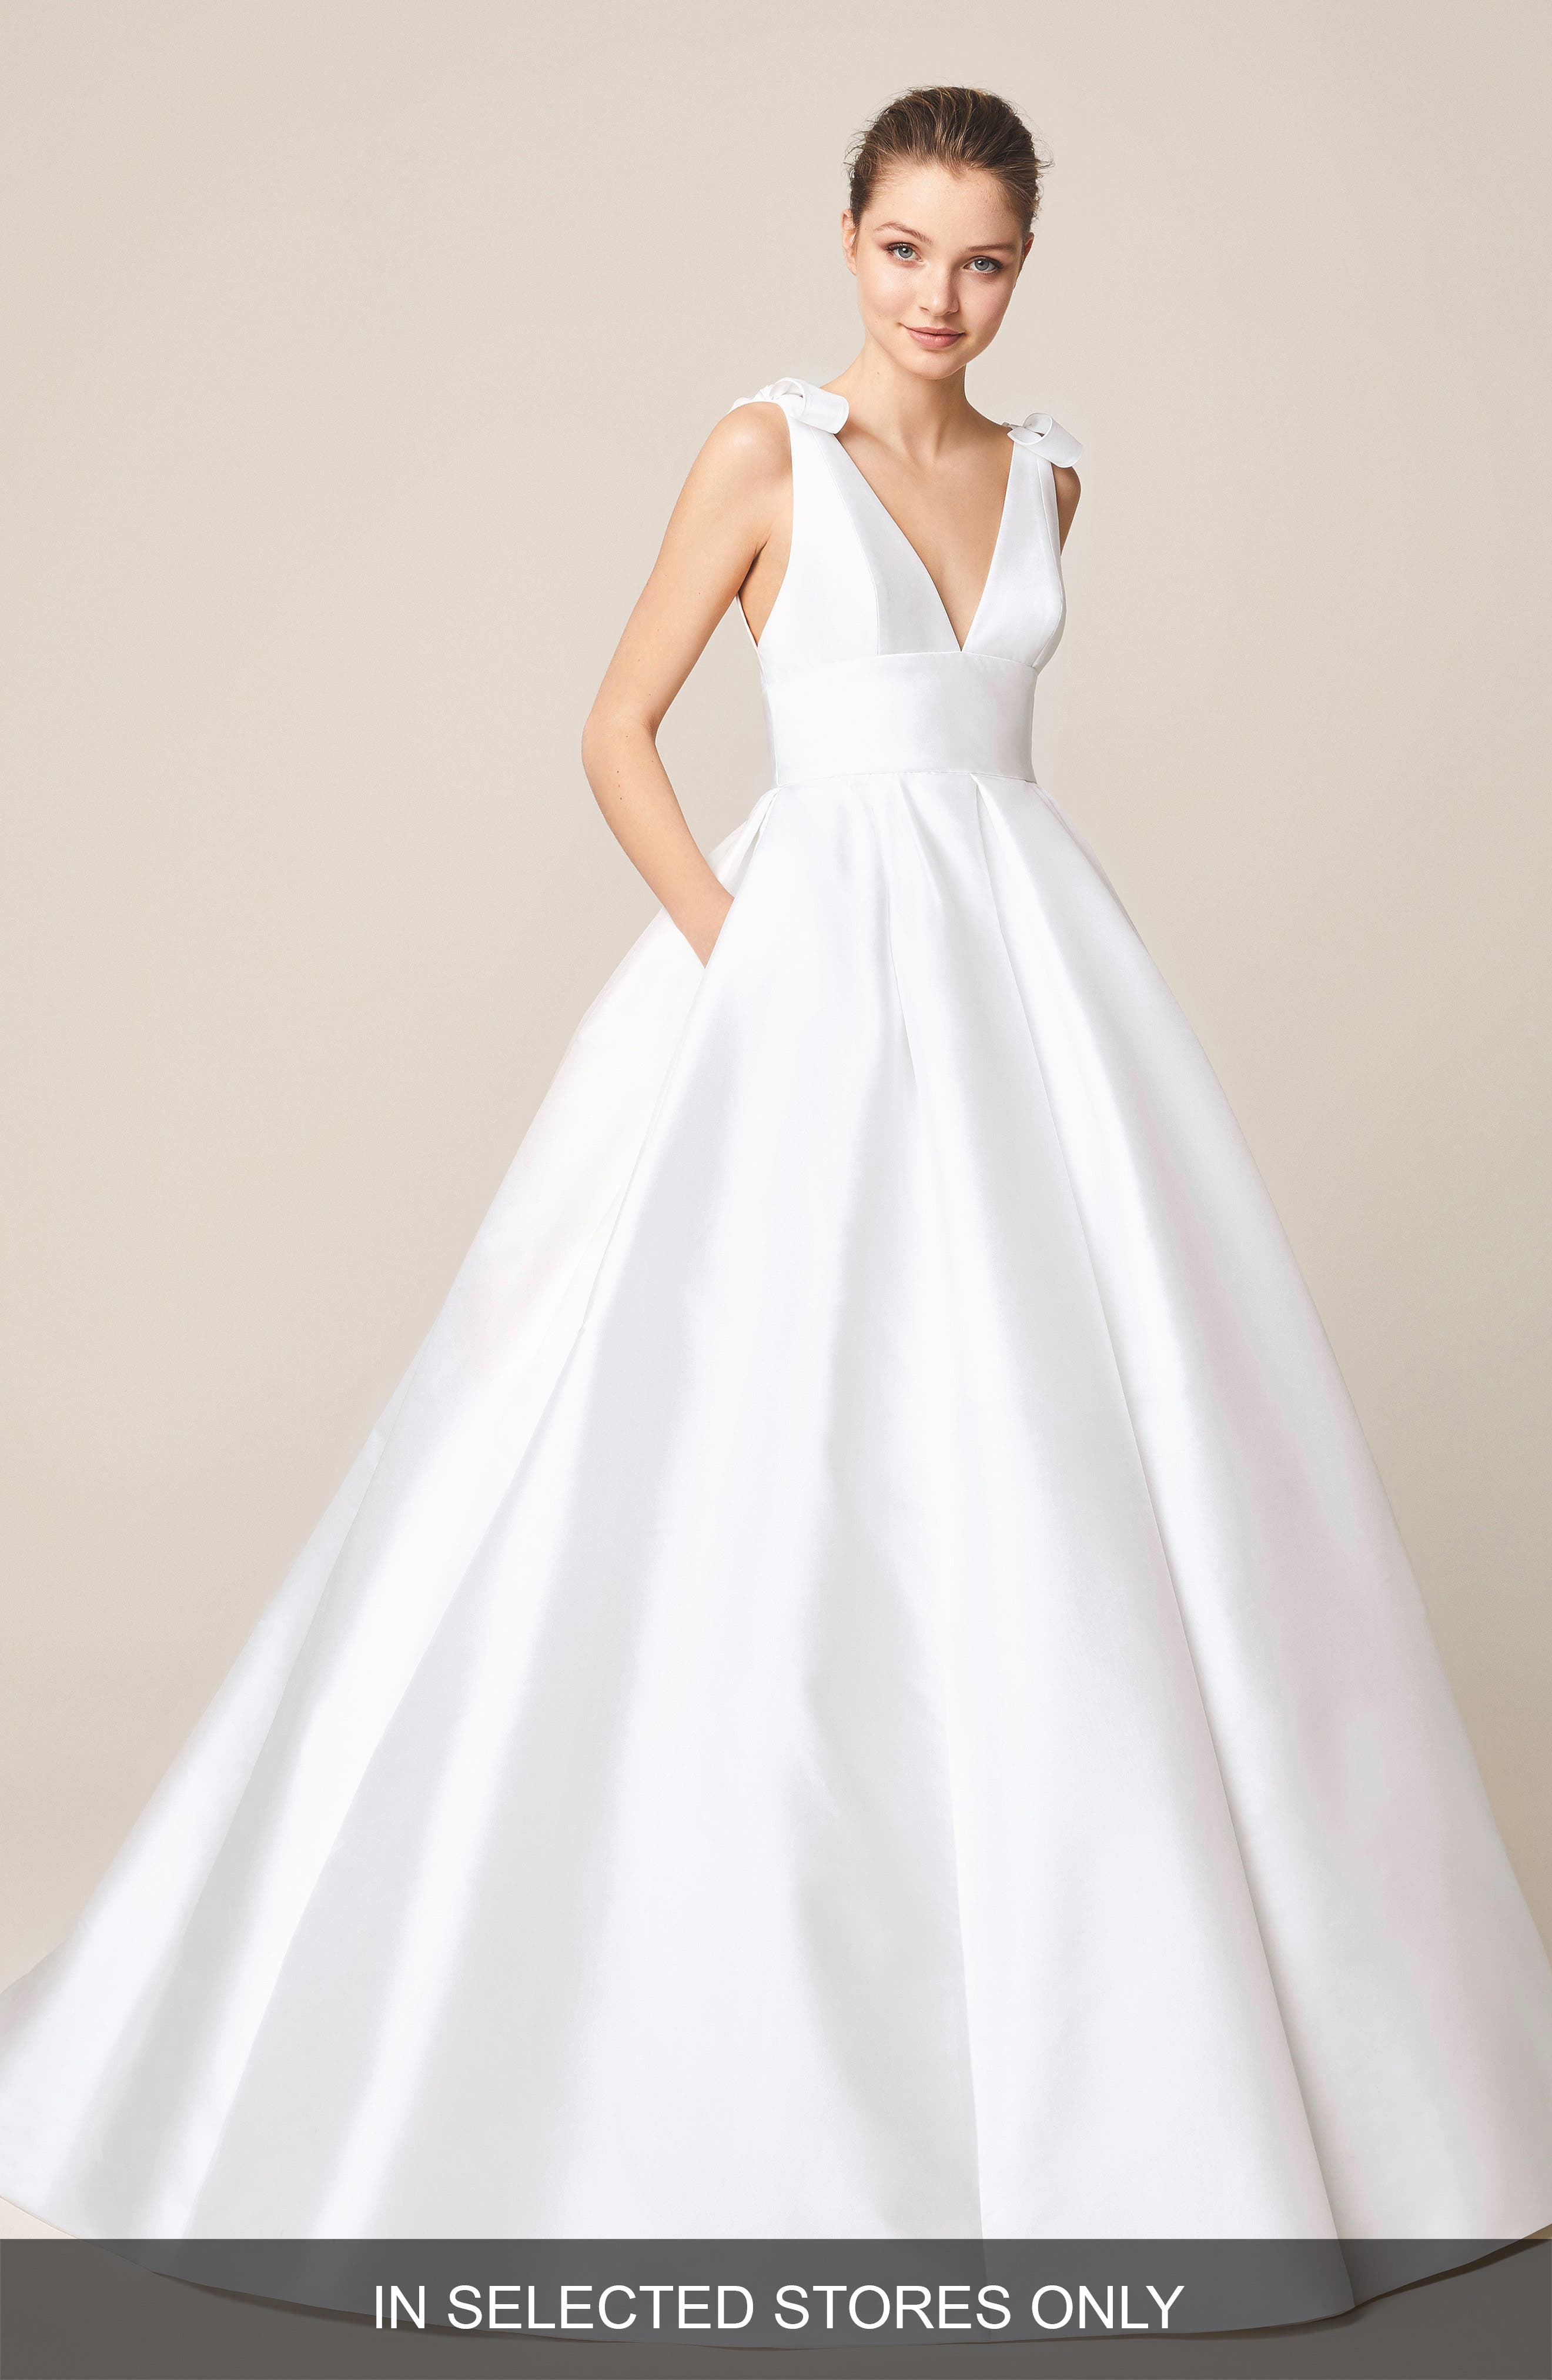 Jesus Peiro Satin V-Neck Bow Detail Wedding Dress, Size IN STORE ONLY - White